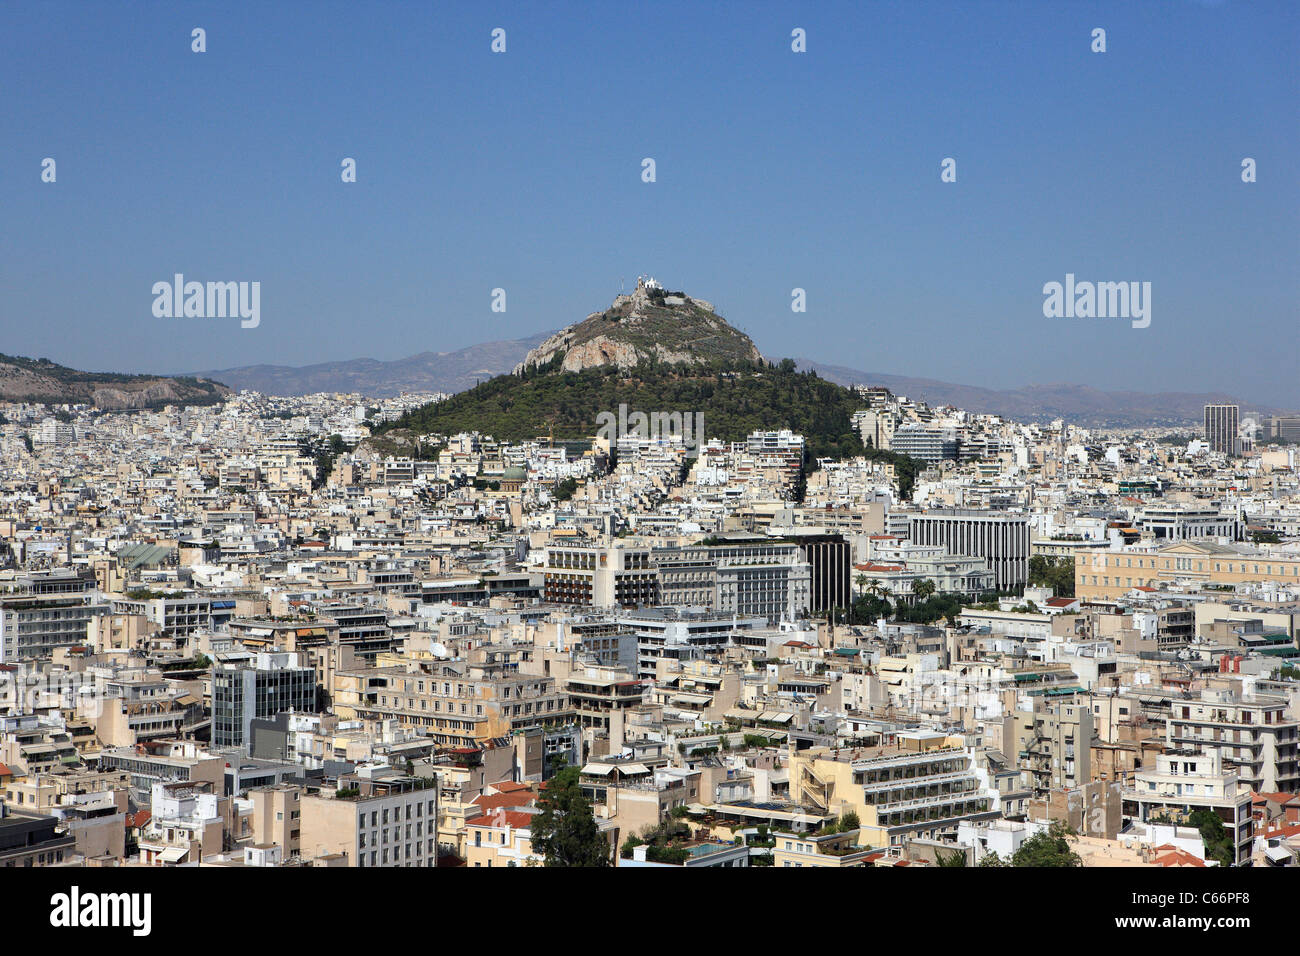 view-of-athens-and-mount-lycabettus-227m